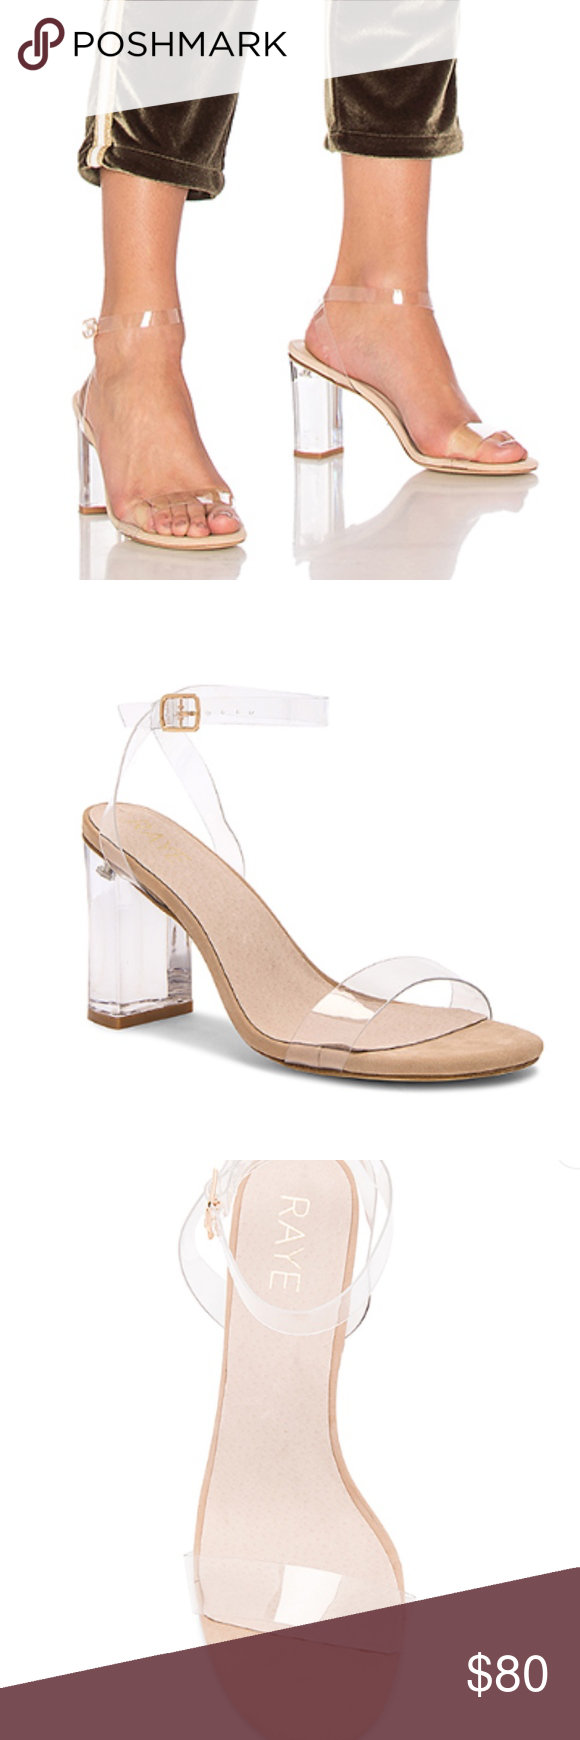 854c64224c7 Raye X Revolve Alta Lucite Heel in Clear Heels 10 Raye X Revolve Women s Alta  Lucite Heel in Clear Size 10 Nude Clear Open Toe Hardly shows any signs of  ...